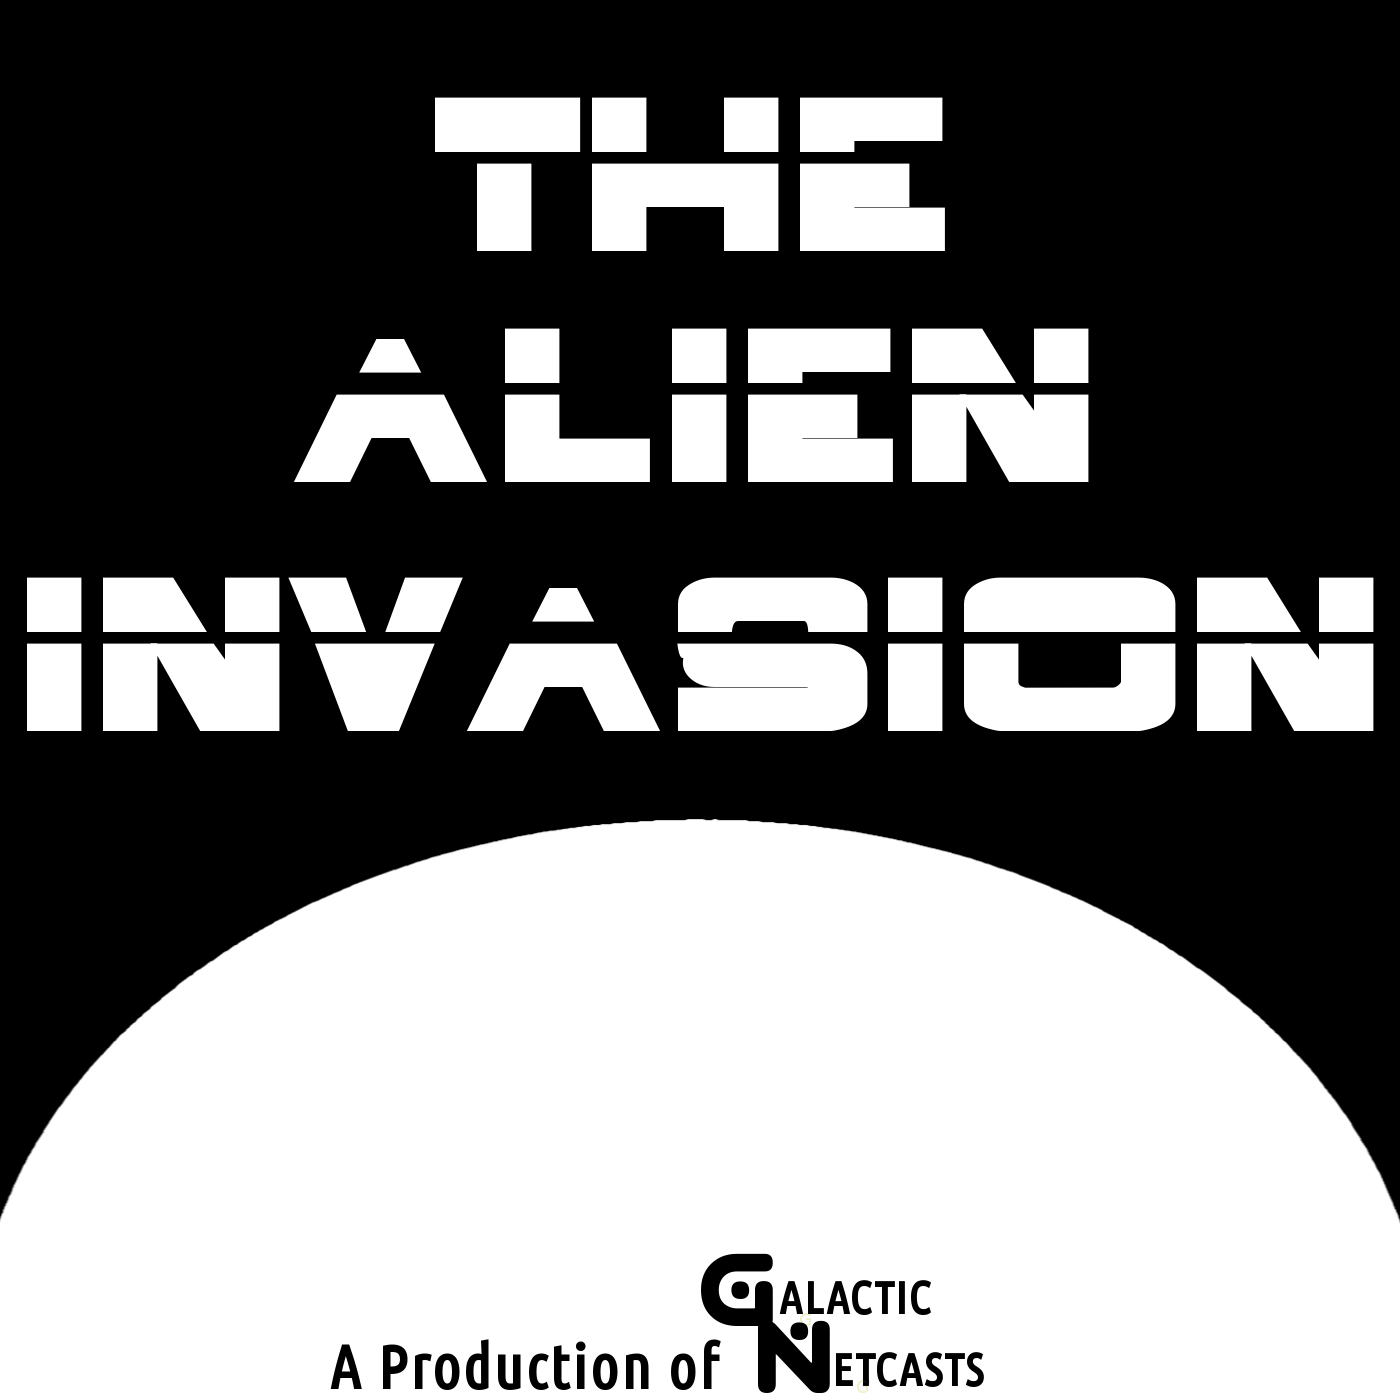 The Alien Invasion logo